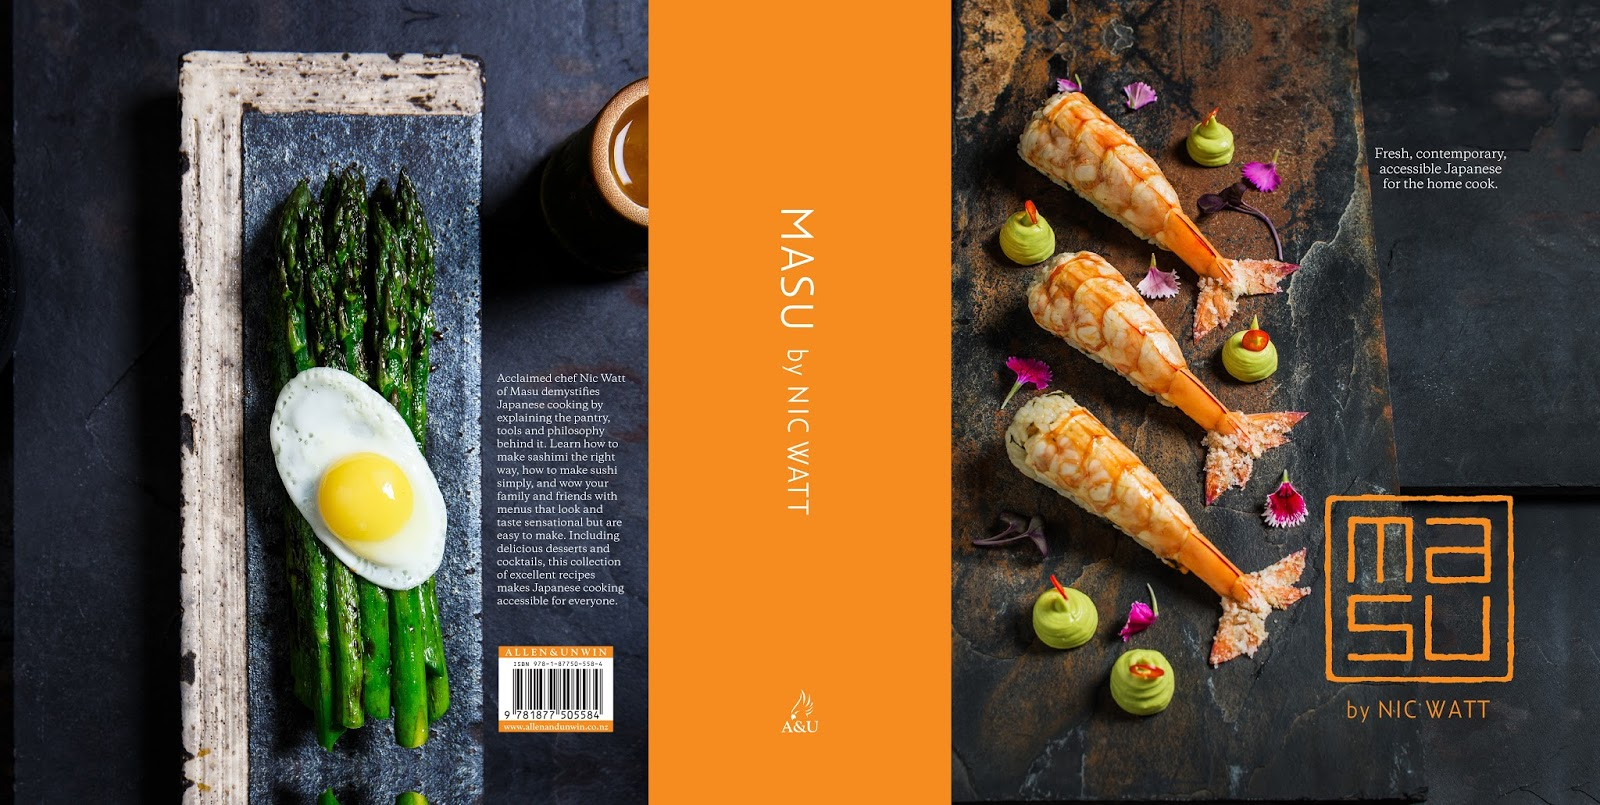 Beatties cookbook and food wine blog masu fresh contemporary this stunning cookbook combines beautiful photography and creative styling with excellent recipes designed to make japanese cooking accessible forumfinder Gallery